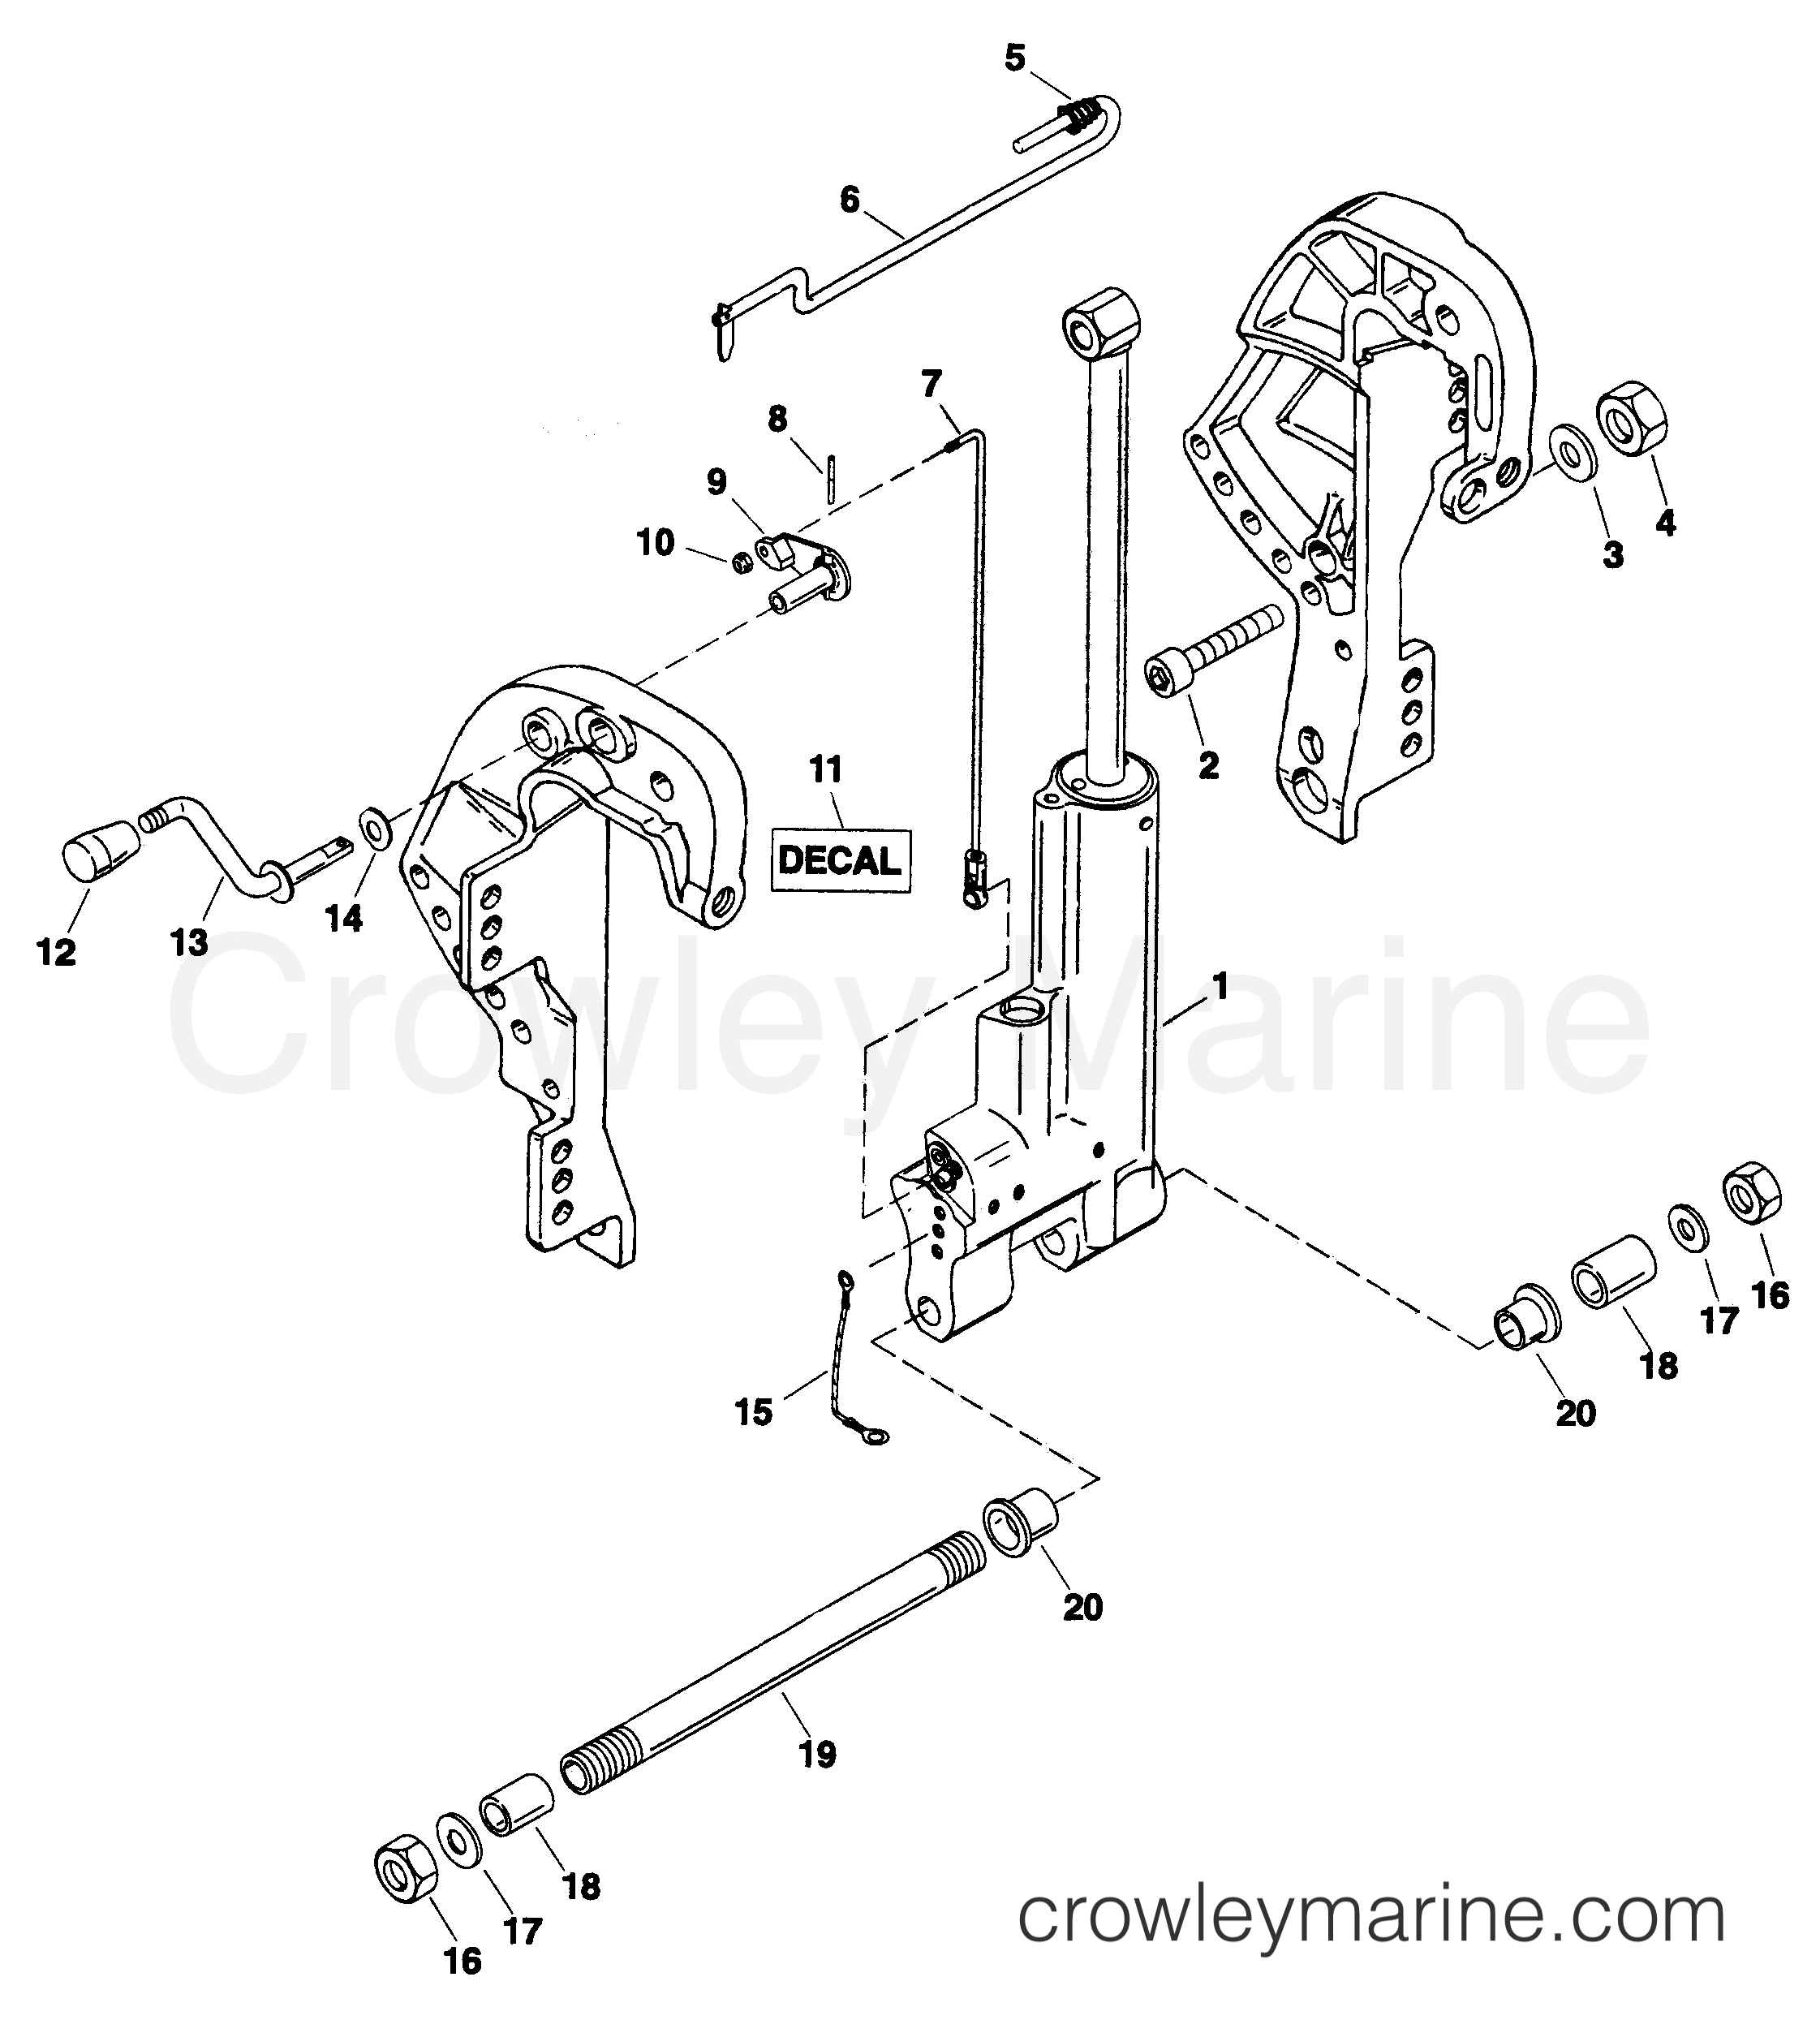 Mercury Trim Tilt Manual